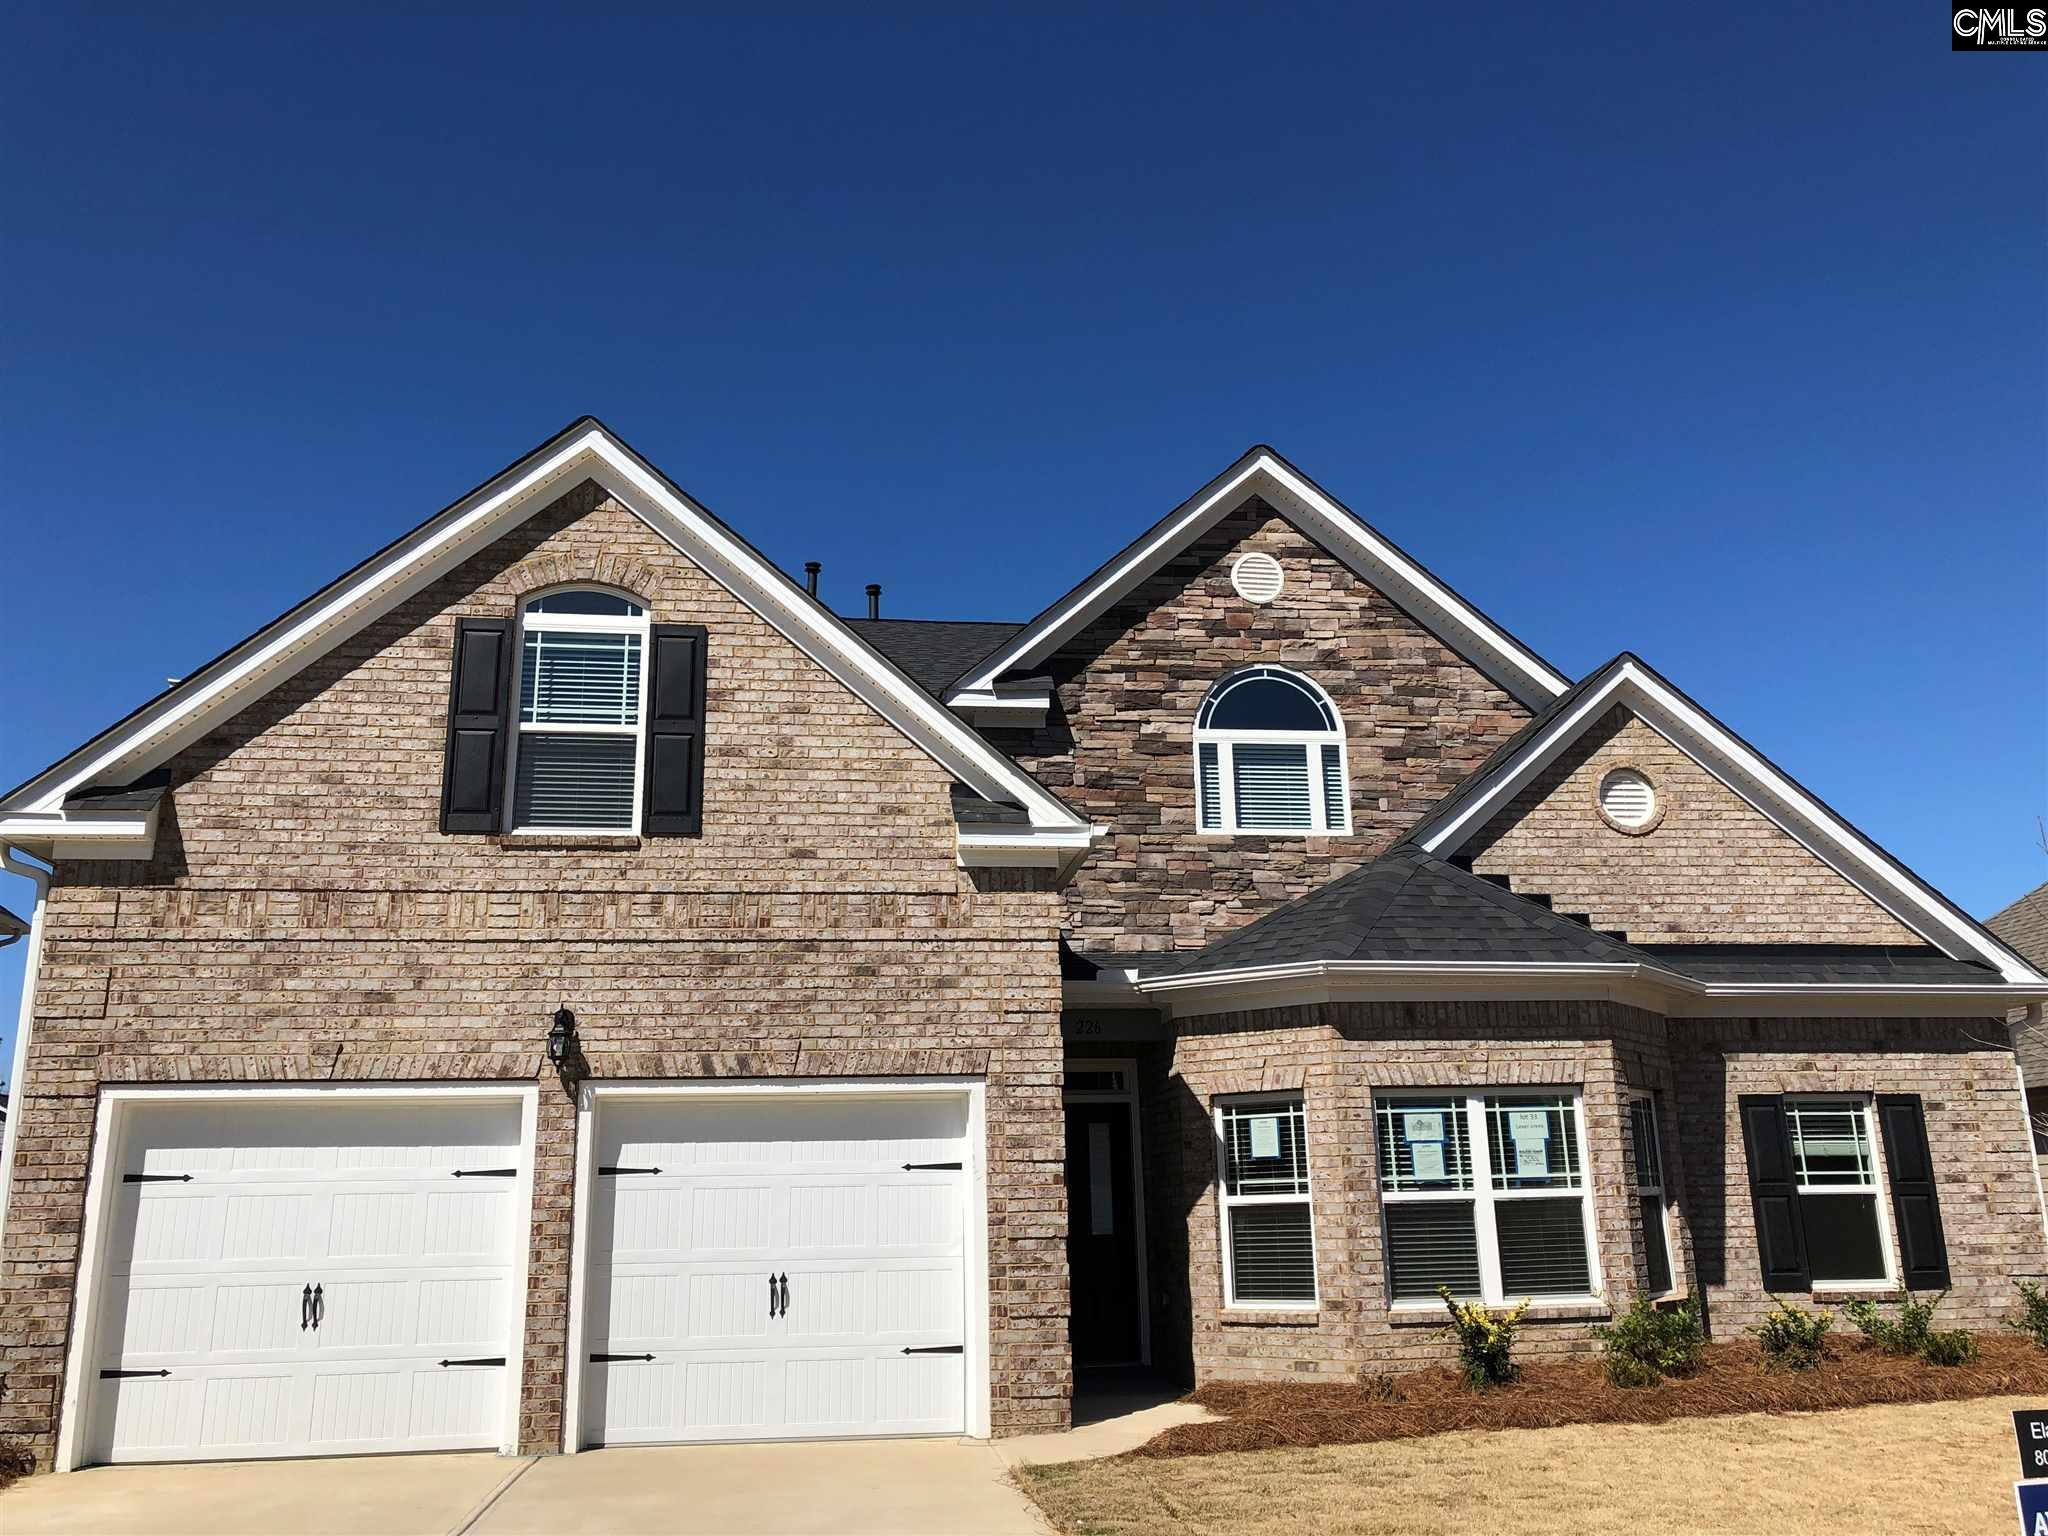 246 Lever Pass #33 Chapin, SC 29036